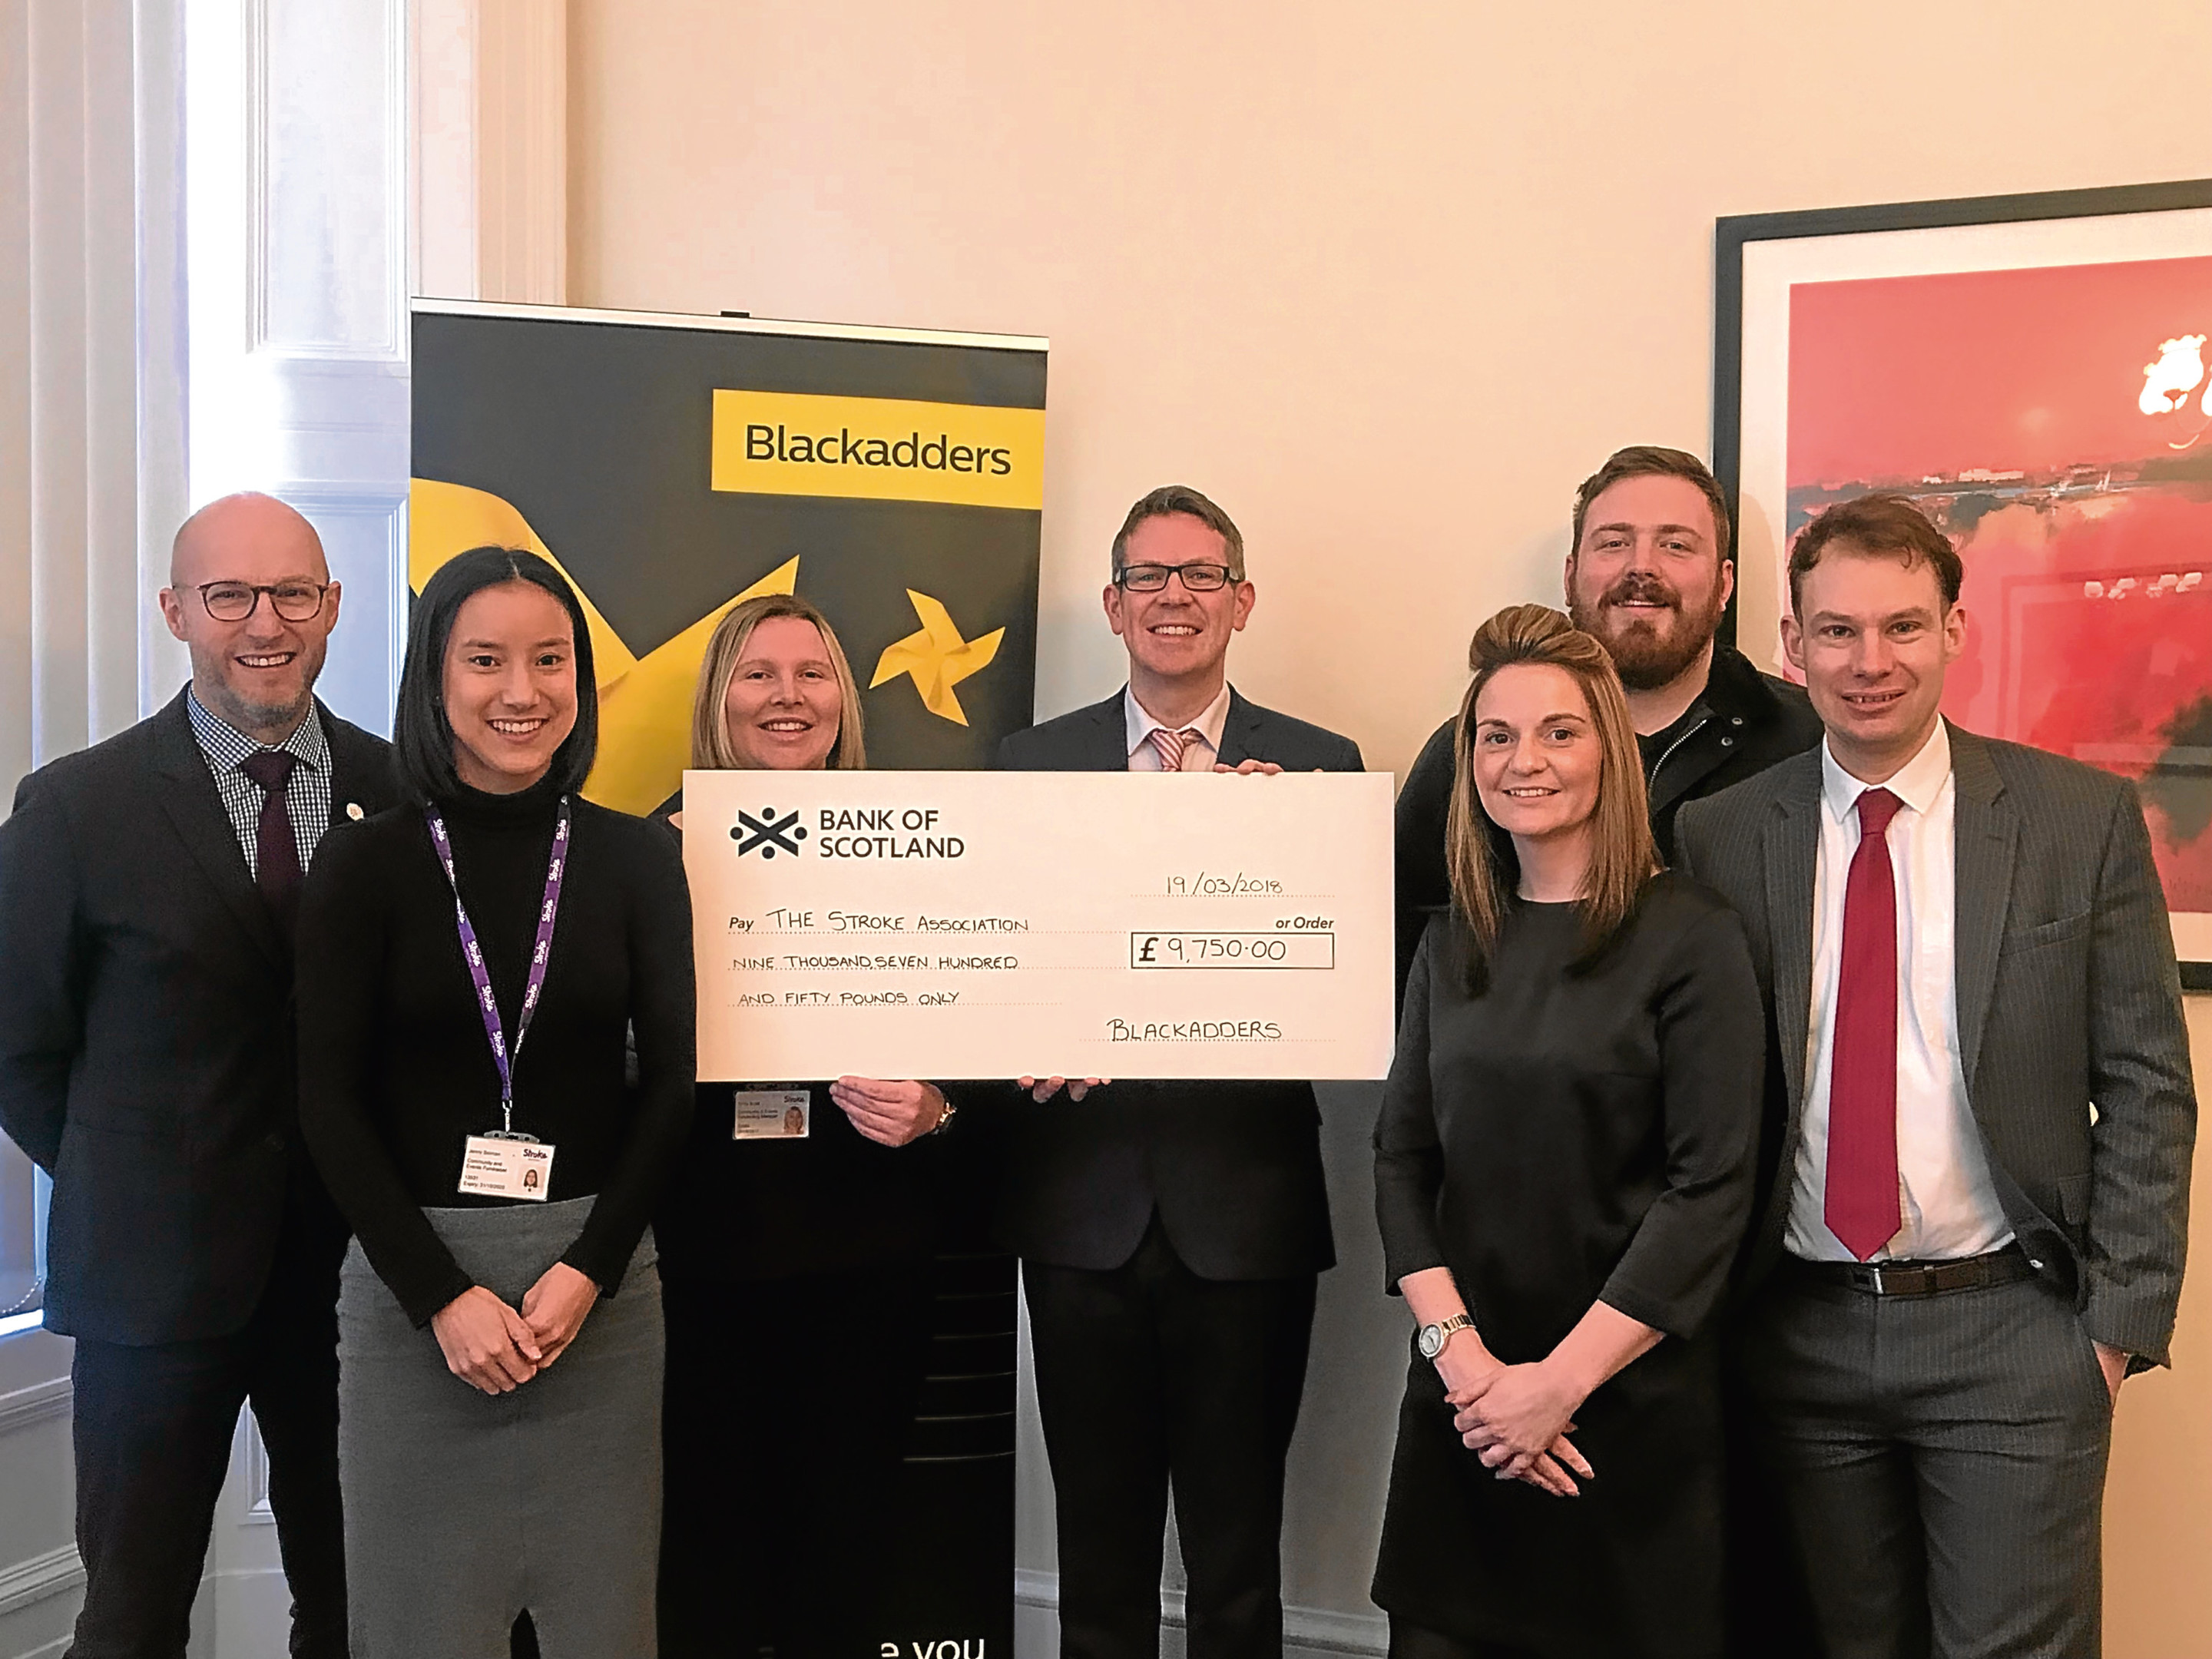 Pictured are (from left) Simon Simpson, Jenny Selman, Kirsty Scott, Simon, Laura, Derek Mawhinney and Jack.